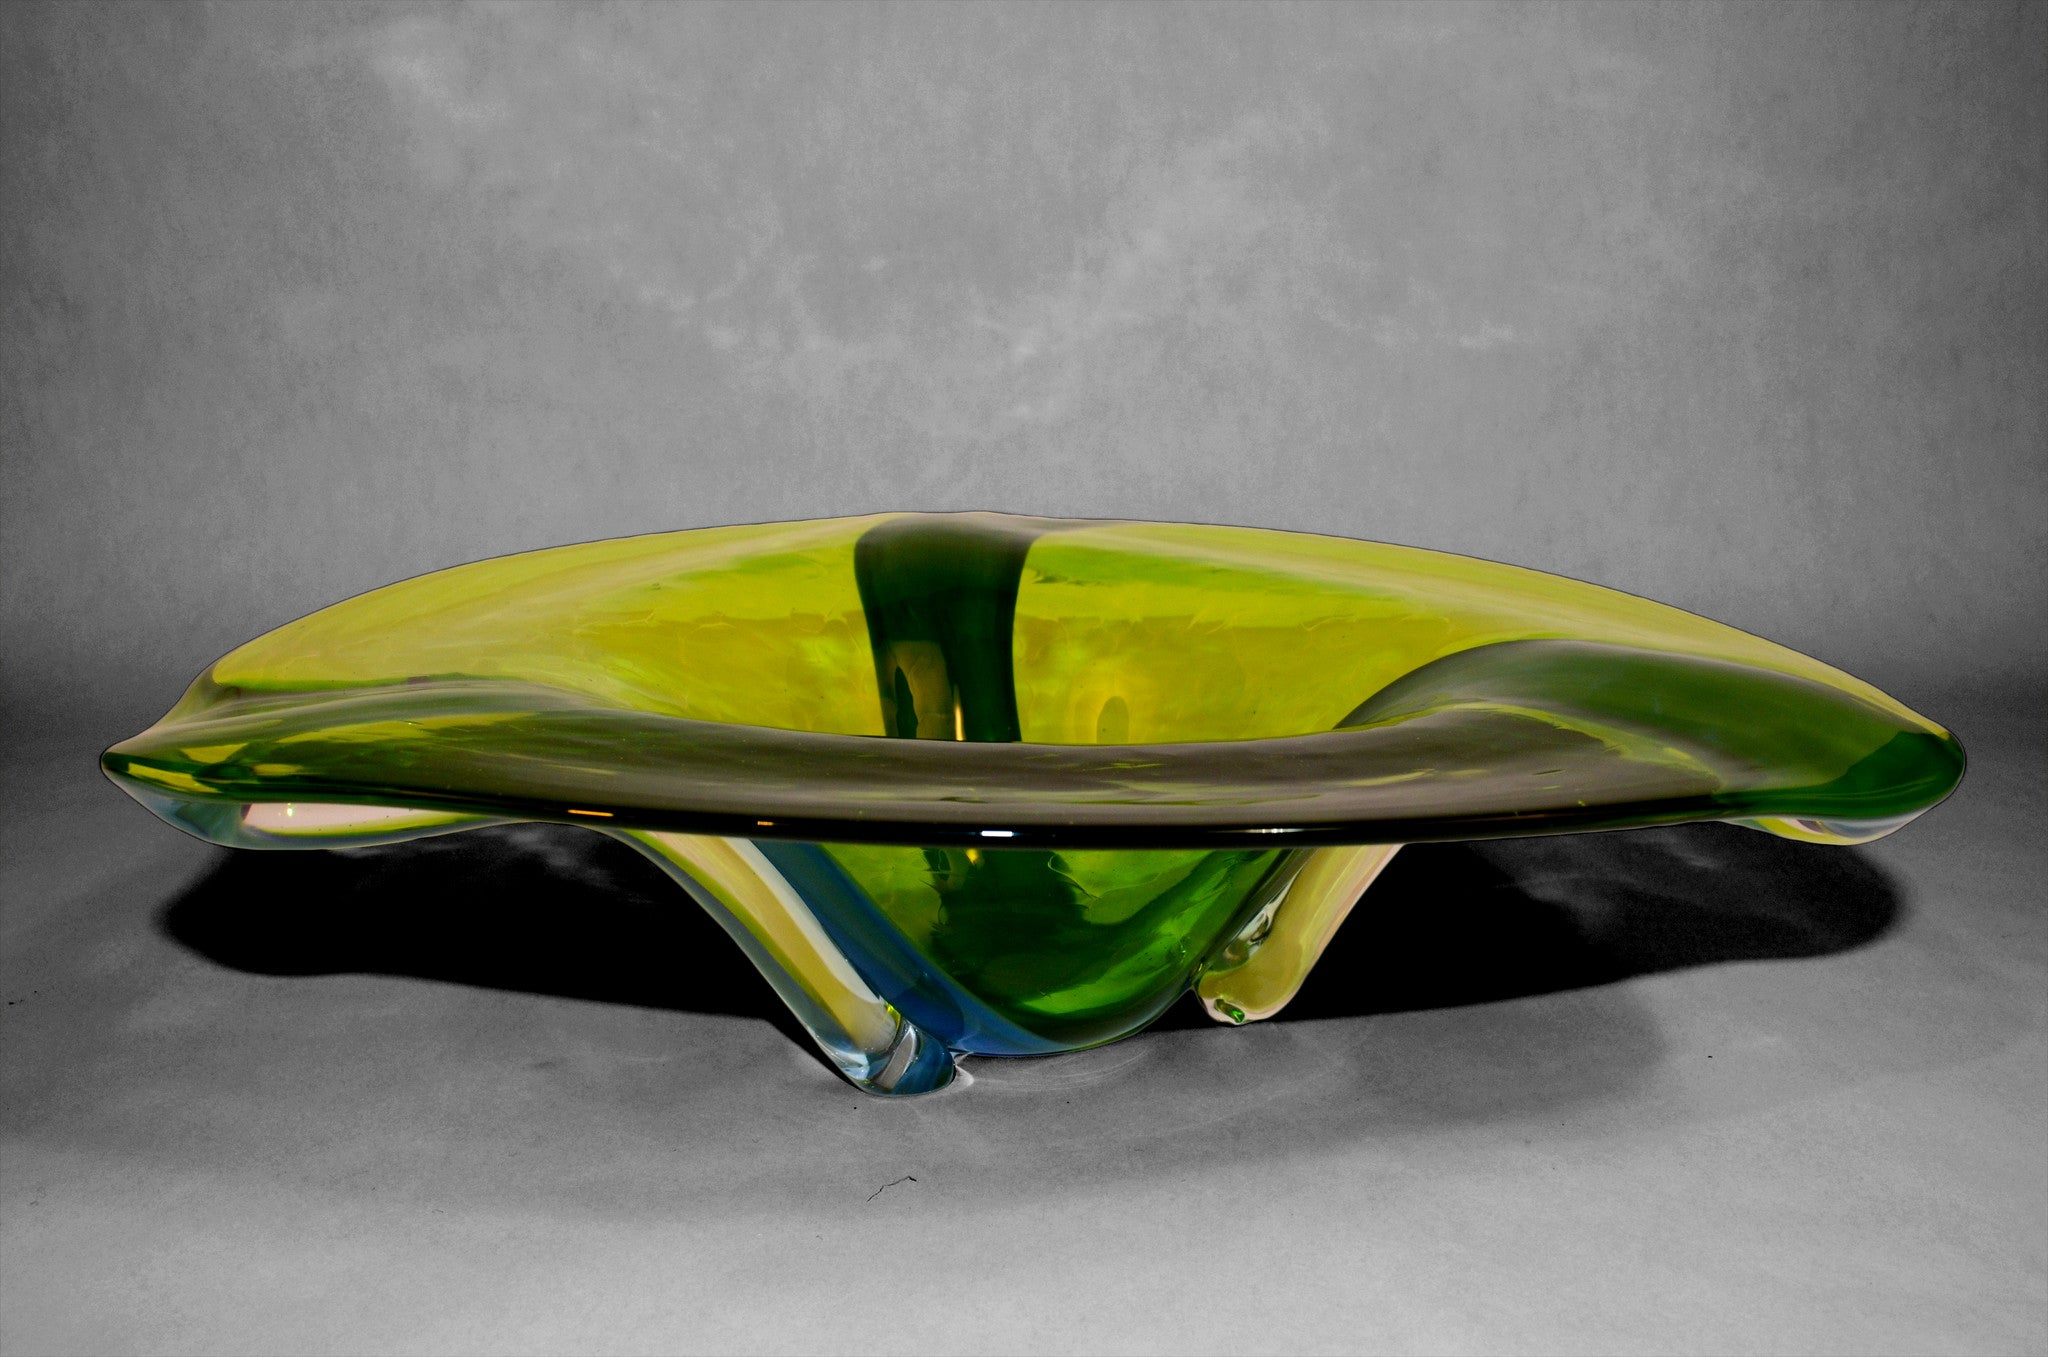 Green triangular shaped murano bowl (side view)